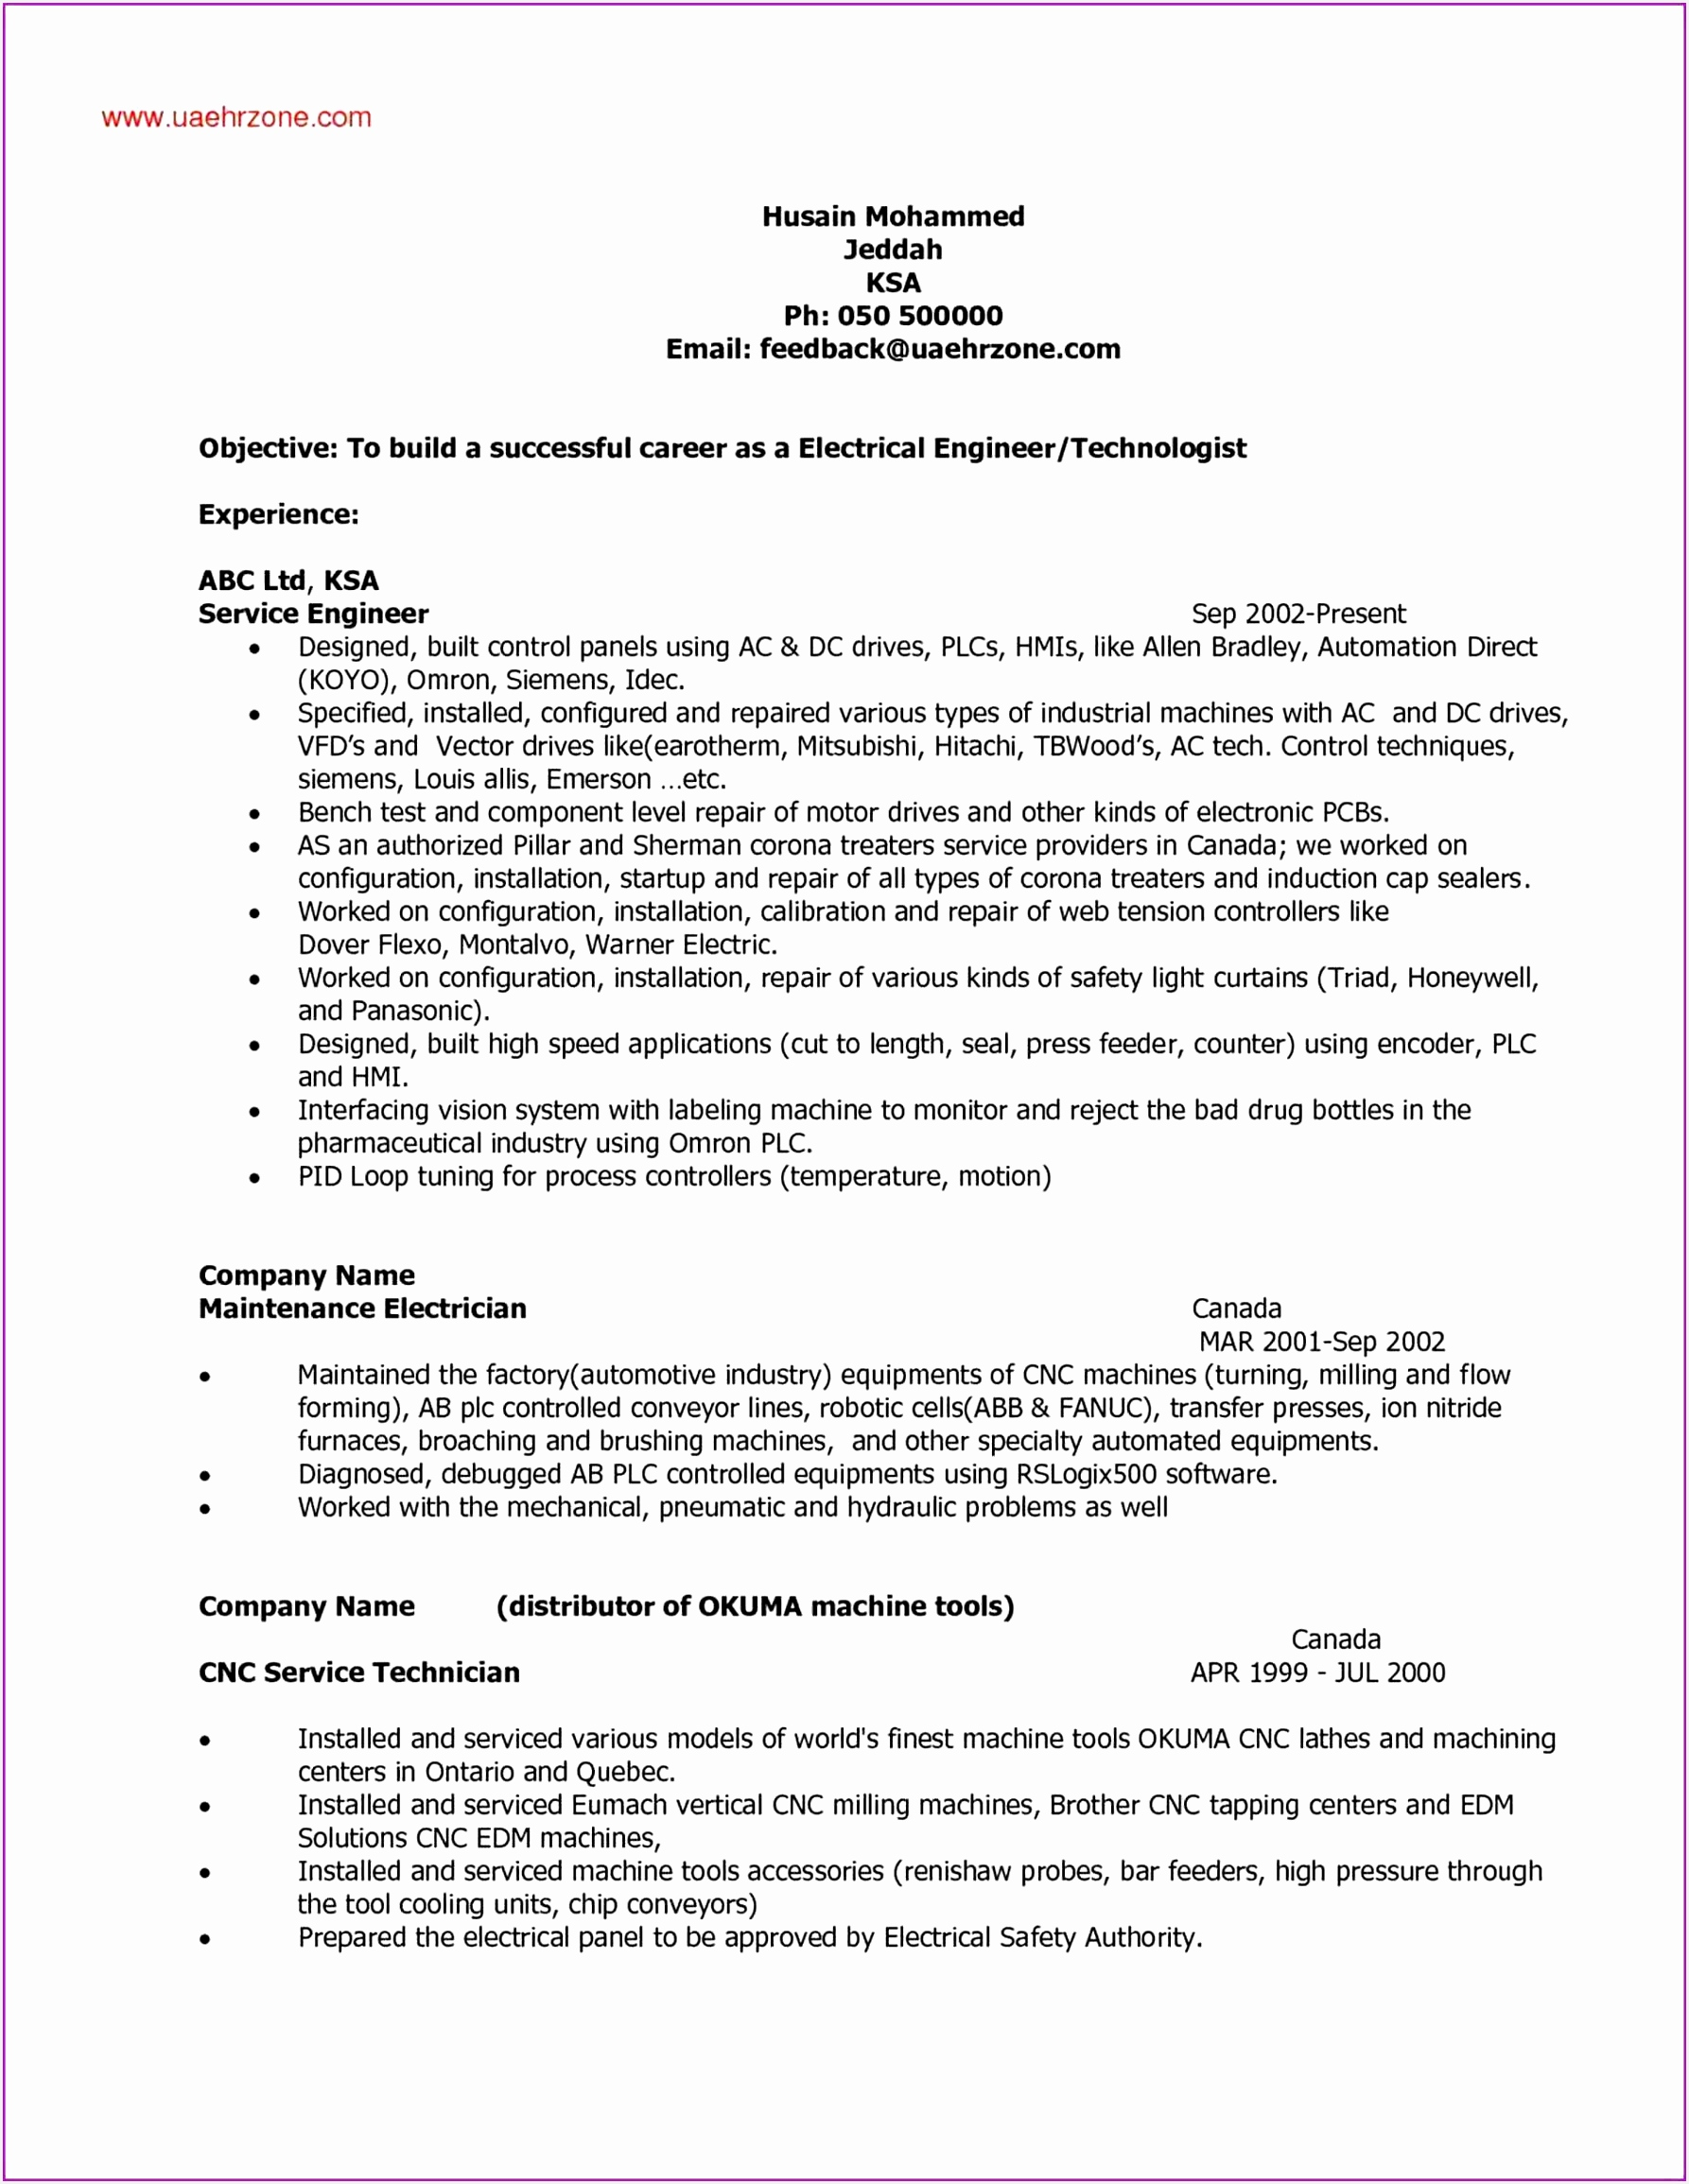 Contract Stress Engineer Sample Resume Baadl Best Of Mechanical Sample Resume Luxury Luxury How to Write A Proper Resume Of Contract Stress Engineer Sample Resume atgkl Awesome 24 Fresh Mechanical Engineering Resume Templates